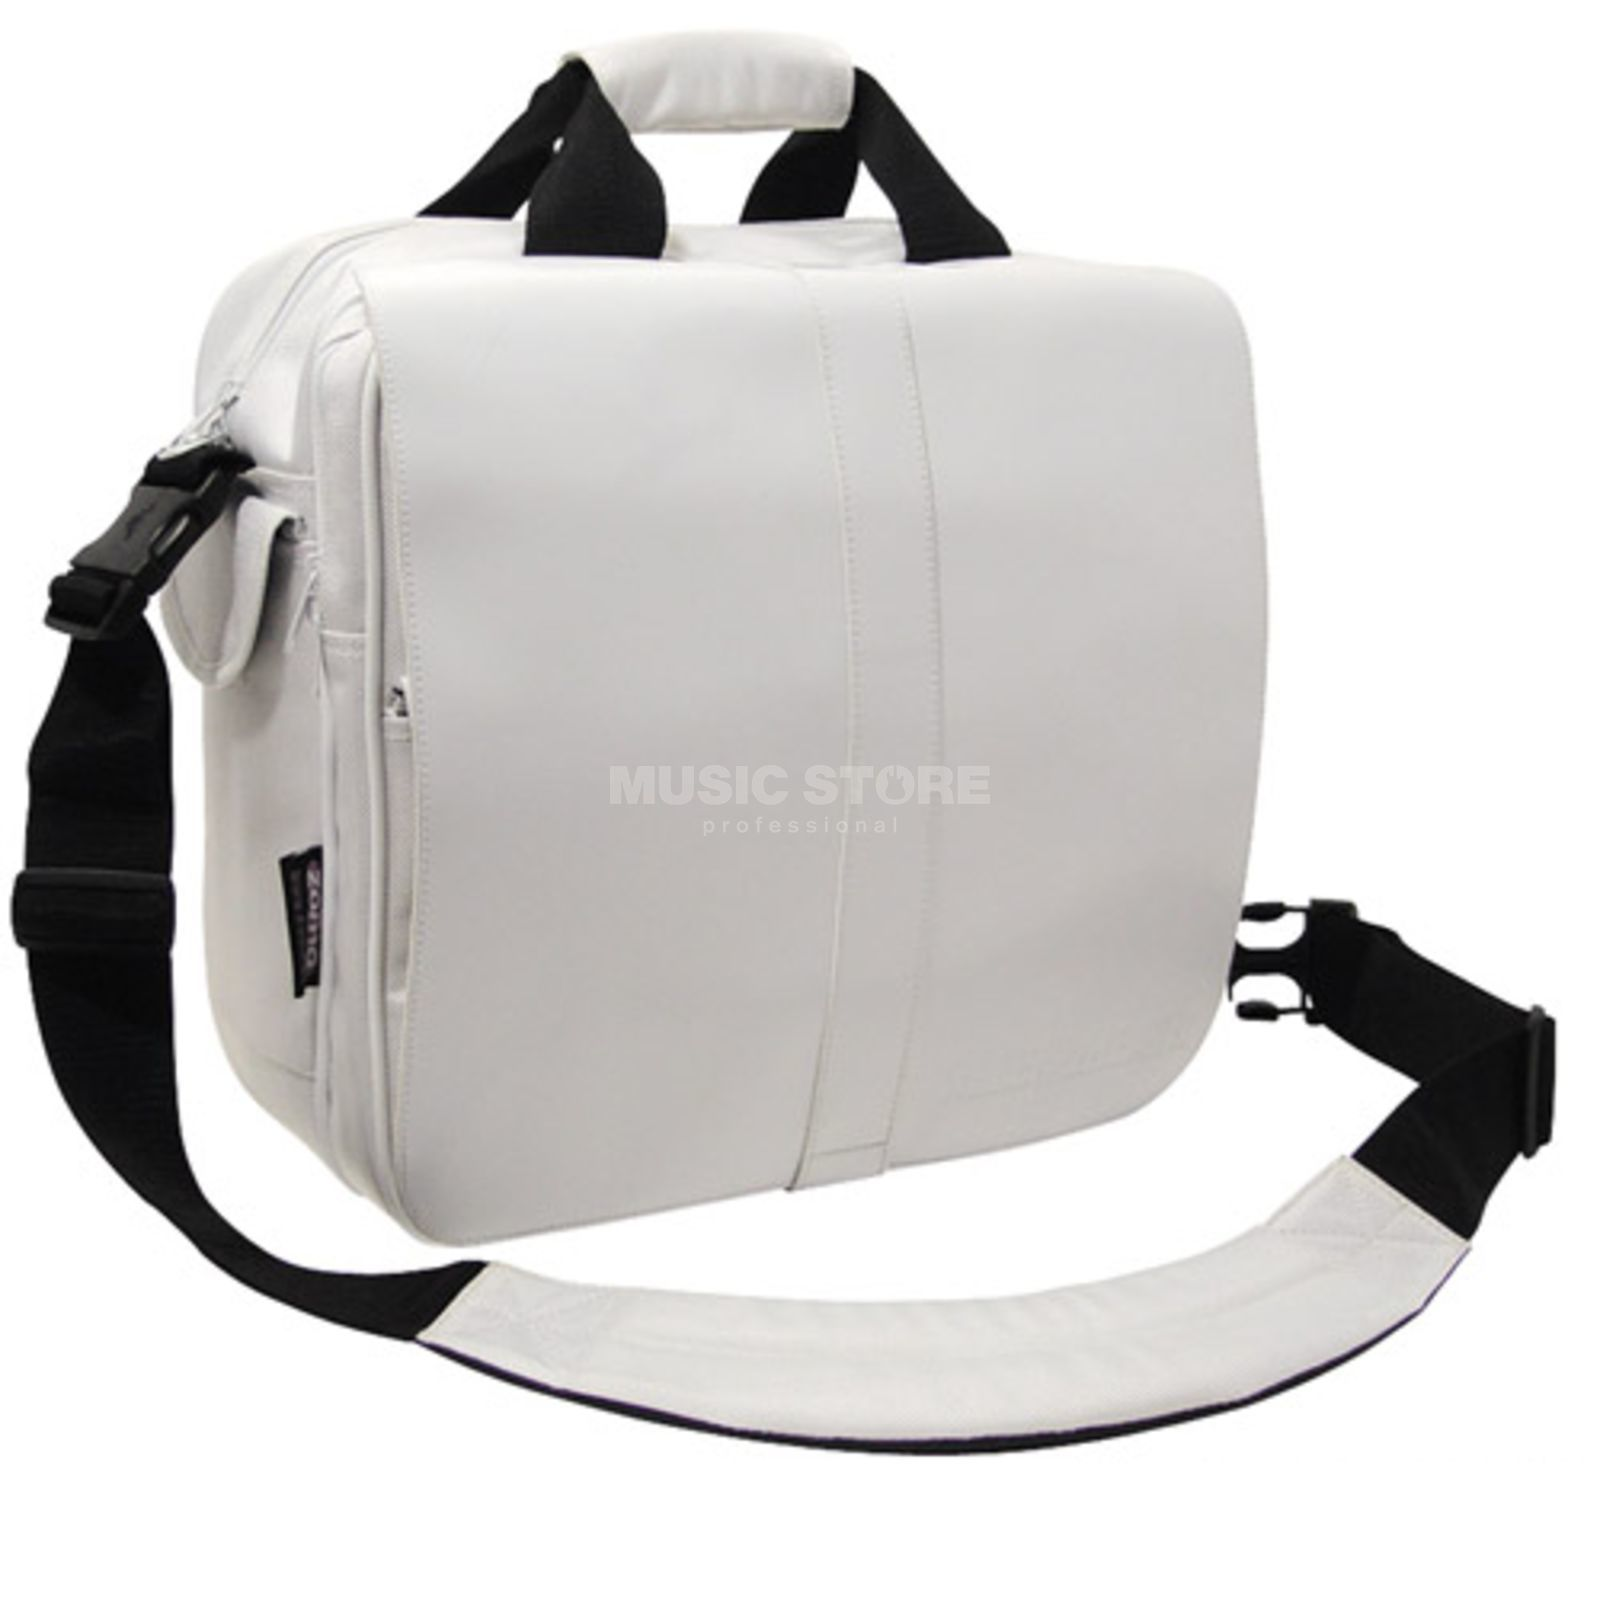 Zomo Digital DJ-Bag White Allen&Heath Brand Image du produit